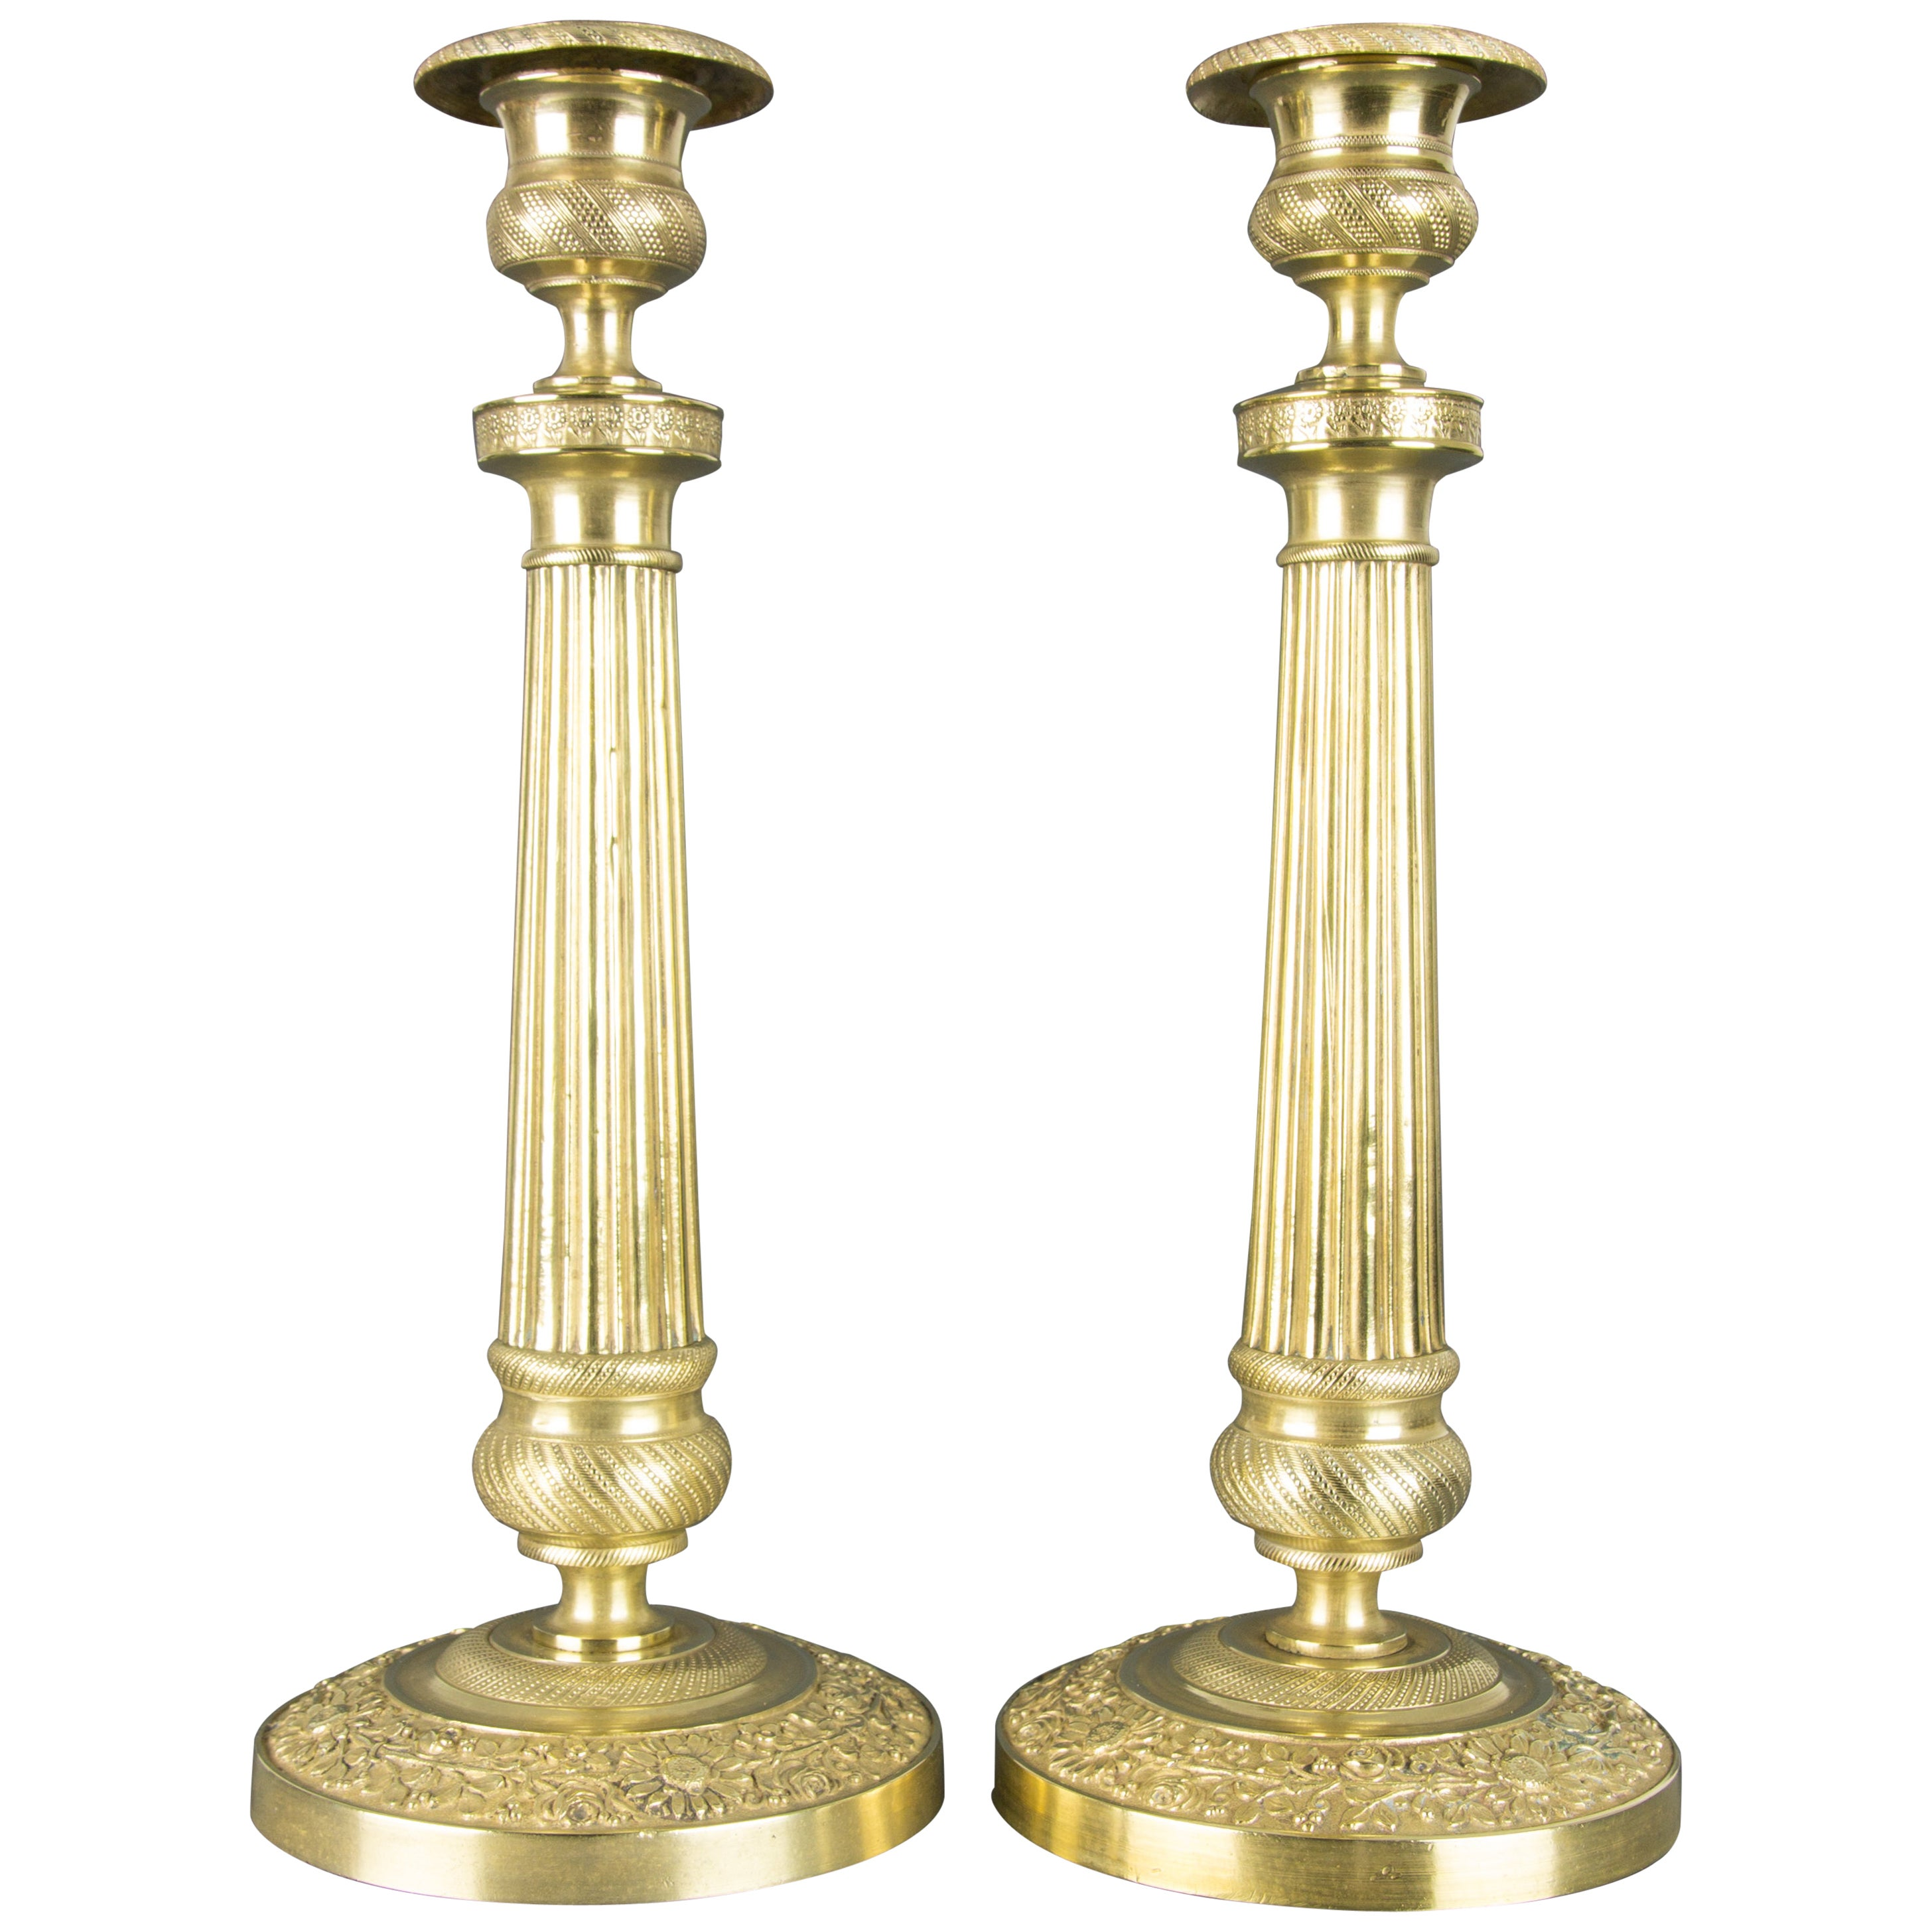 Pair of French Brass Candlesticks with Floral Motifs, 1920s